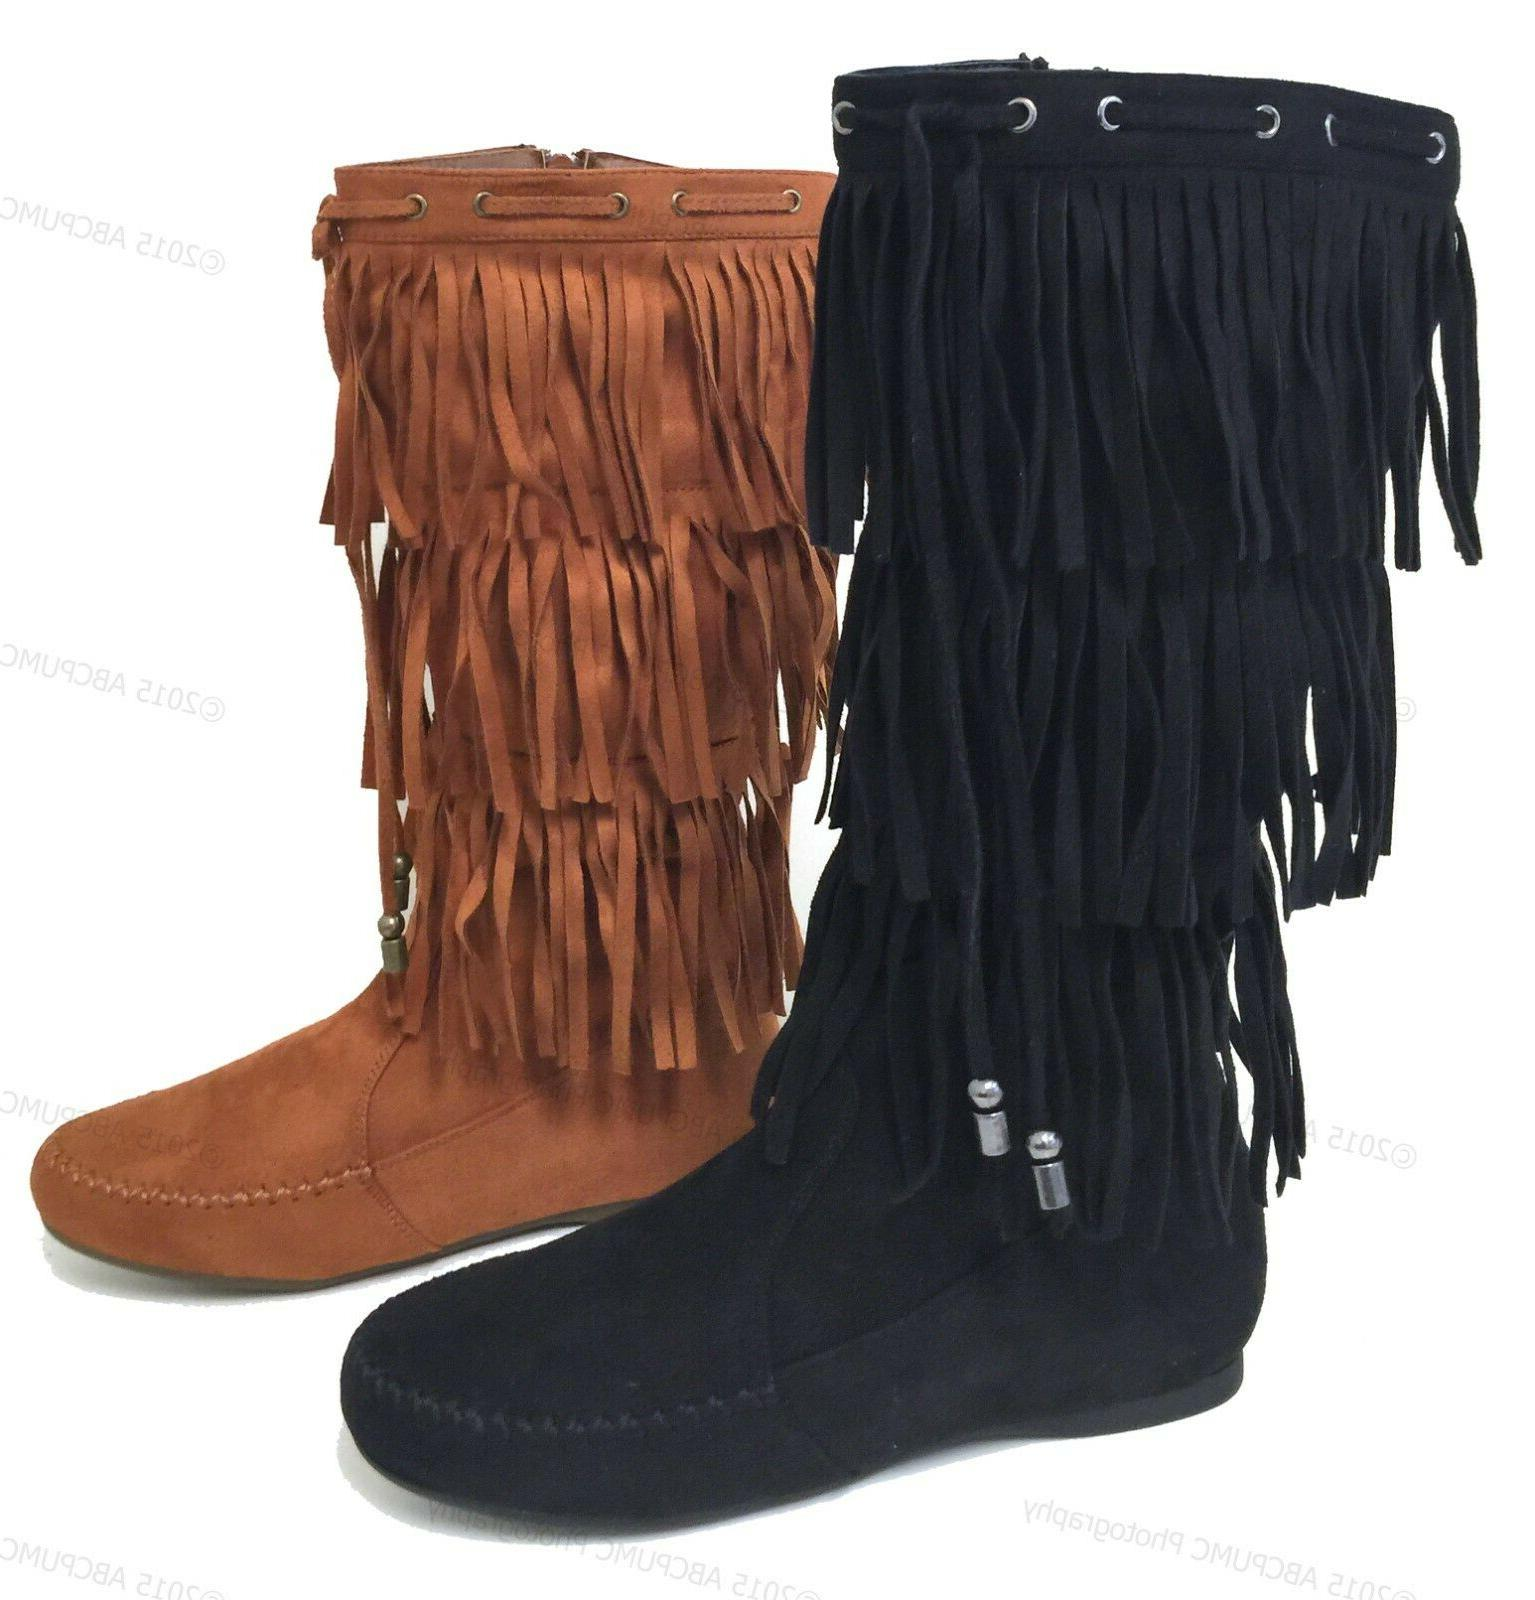 Womens Suede Tassel Fringe Moccasin Boots Flat Layer Mid Cal